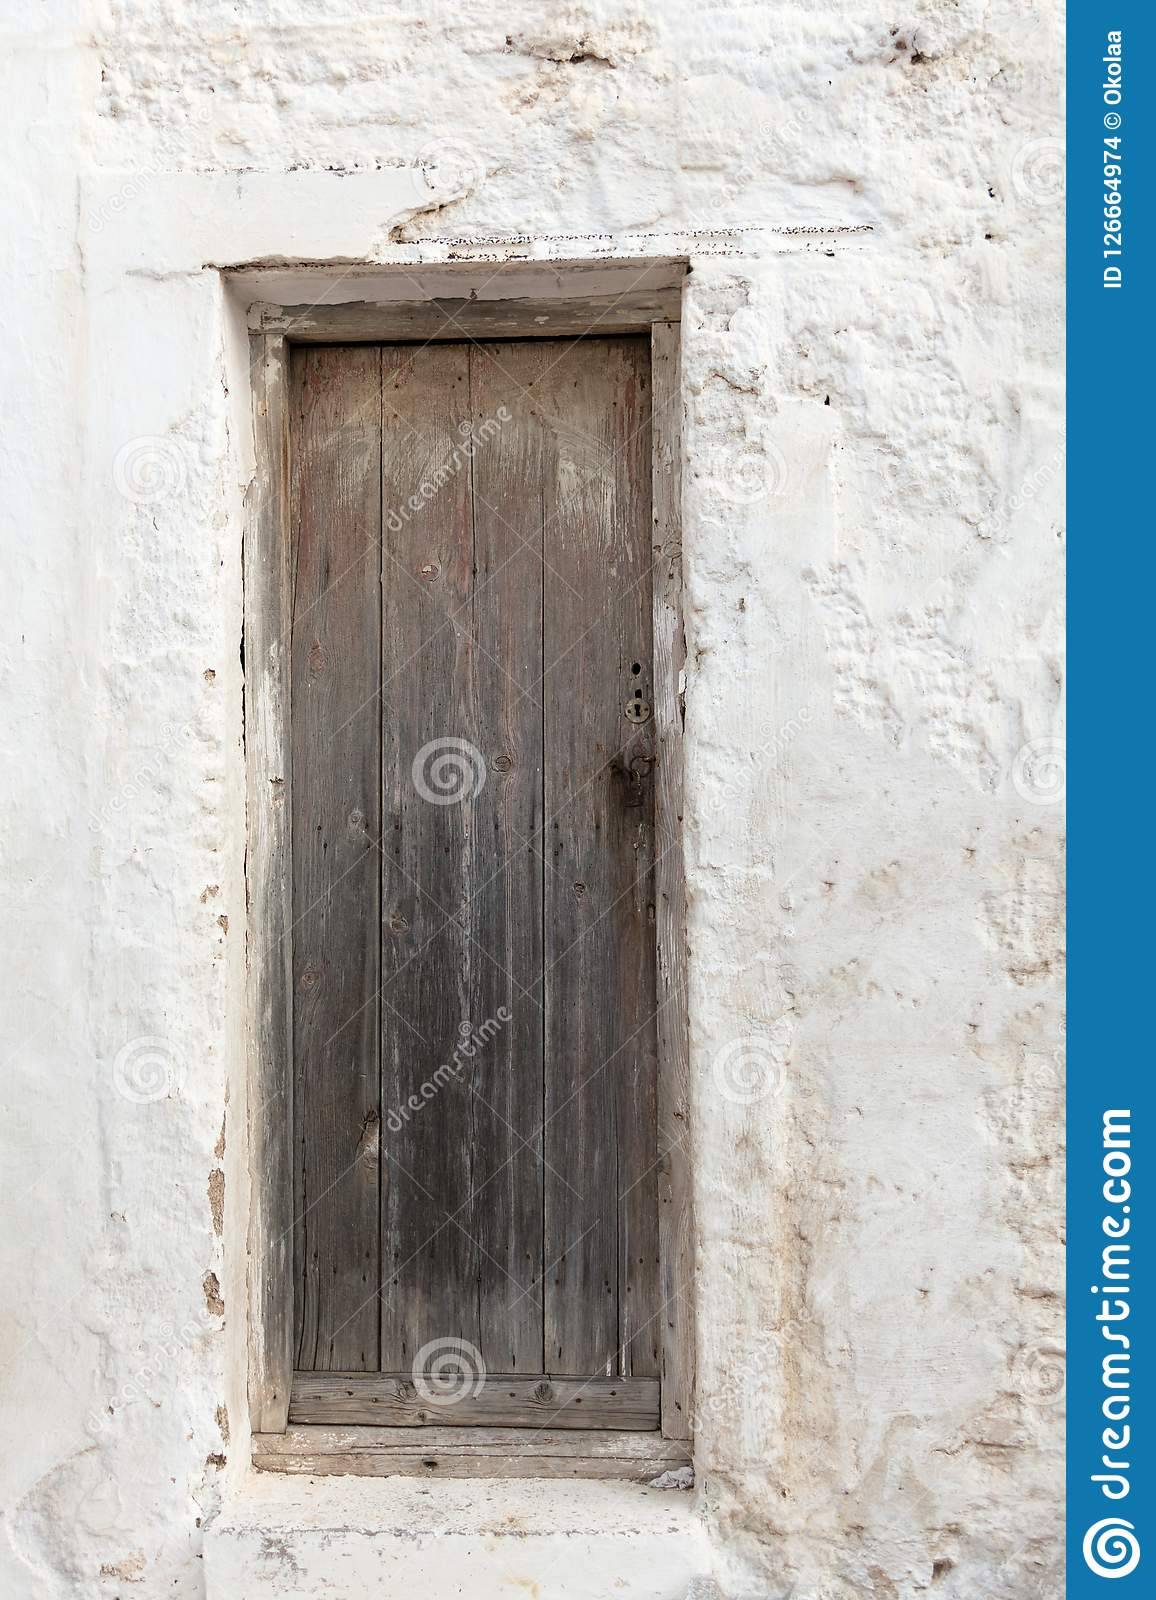 Old wooden door on grunge weathered wall.